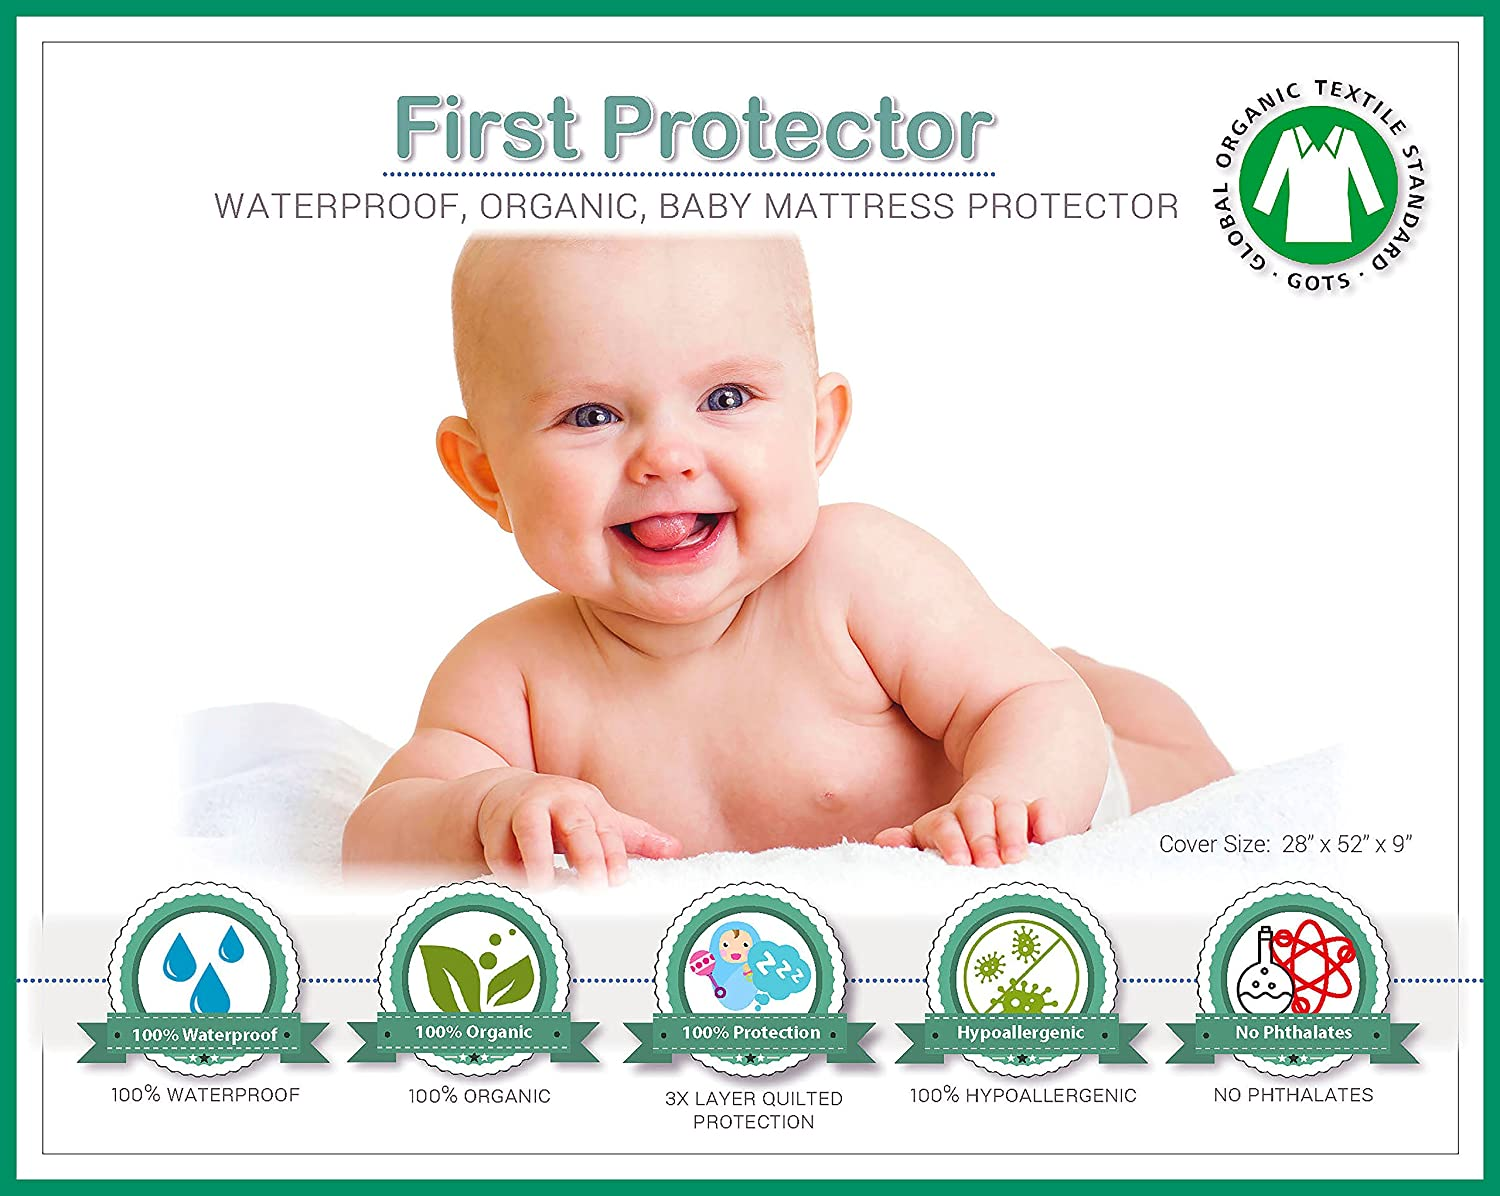 ORGANIC Cotton 100% Waterproof Fitted Crib Protector - Non-Toxic, NO Bamboo Rayon Fiber, Hypoallergenic, Unbleached - Washer/Dryer Friendly (52 x 28 x 9) United States